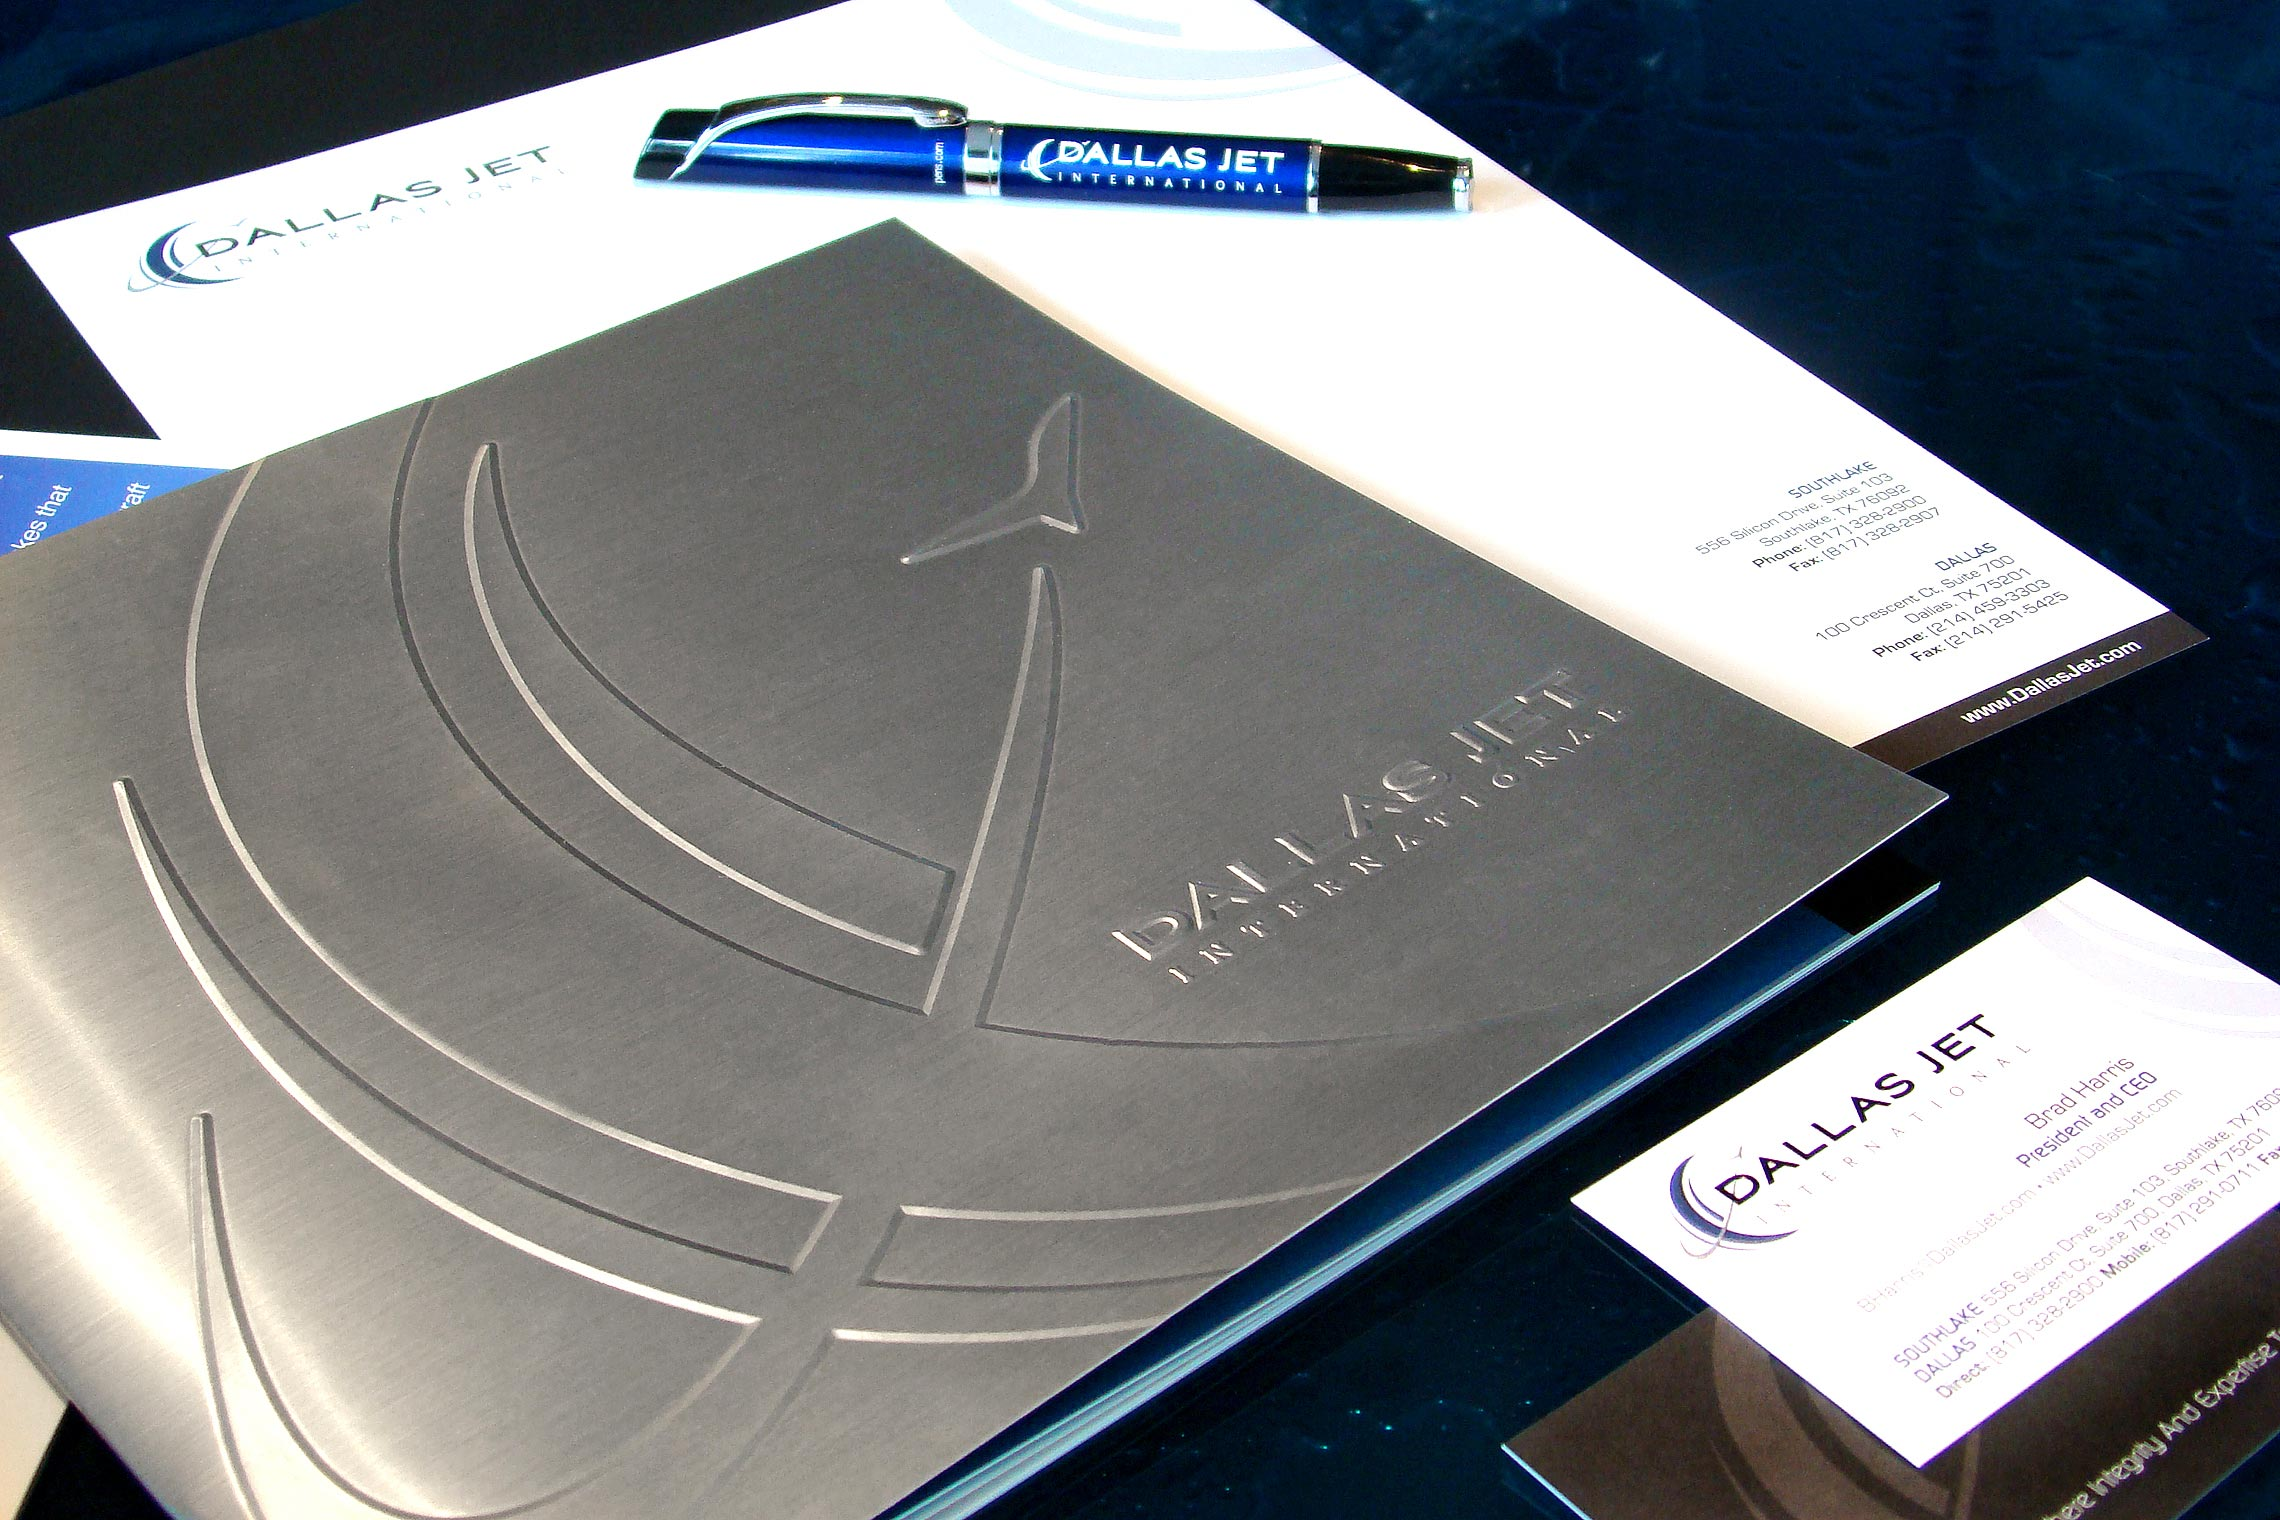 Dallas Jet International Custom Collateral - Brochure, Letterhead, Business Card and Pen